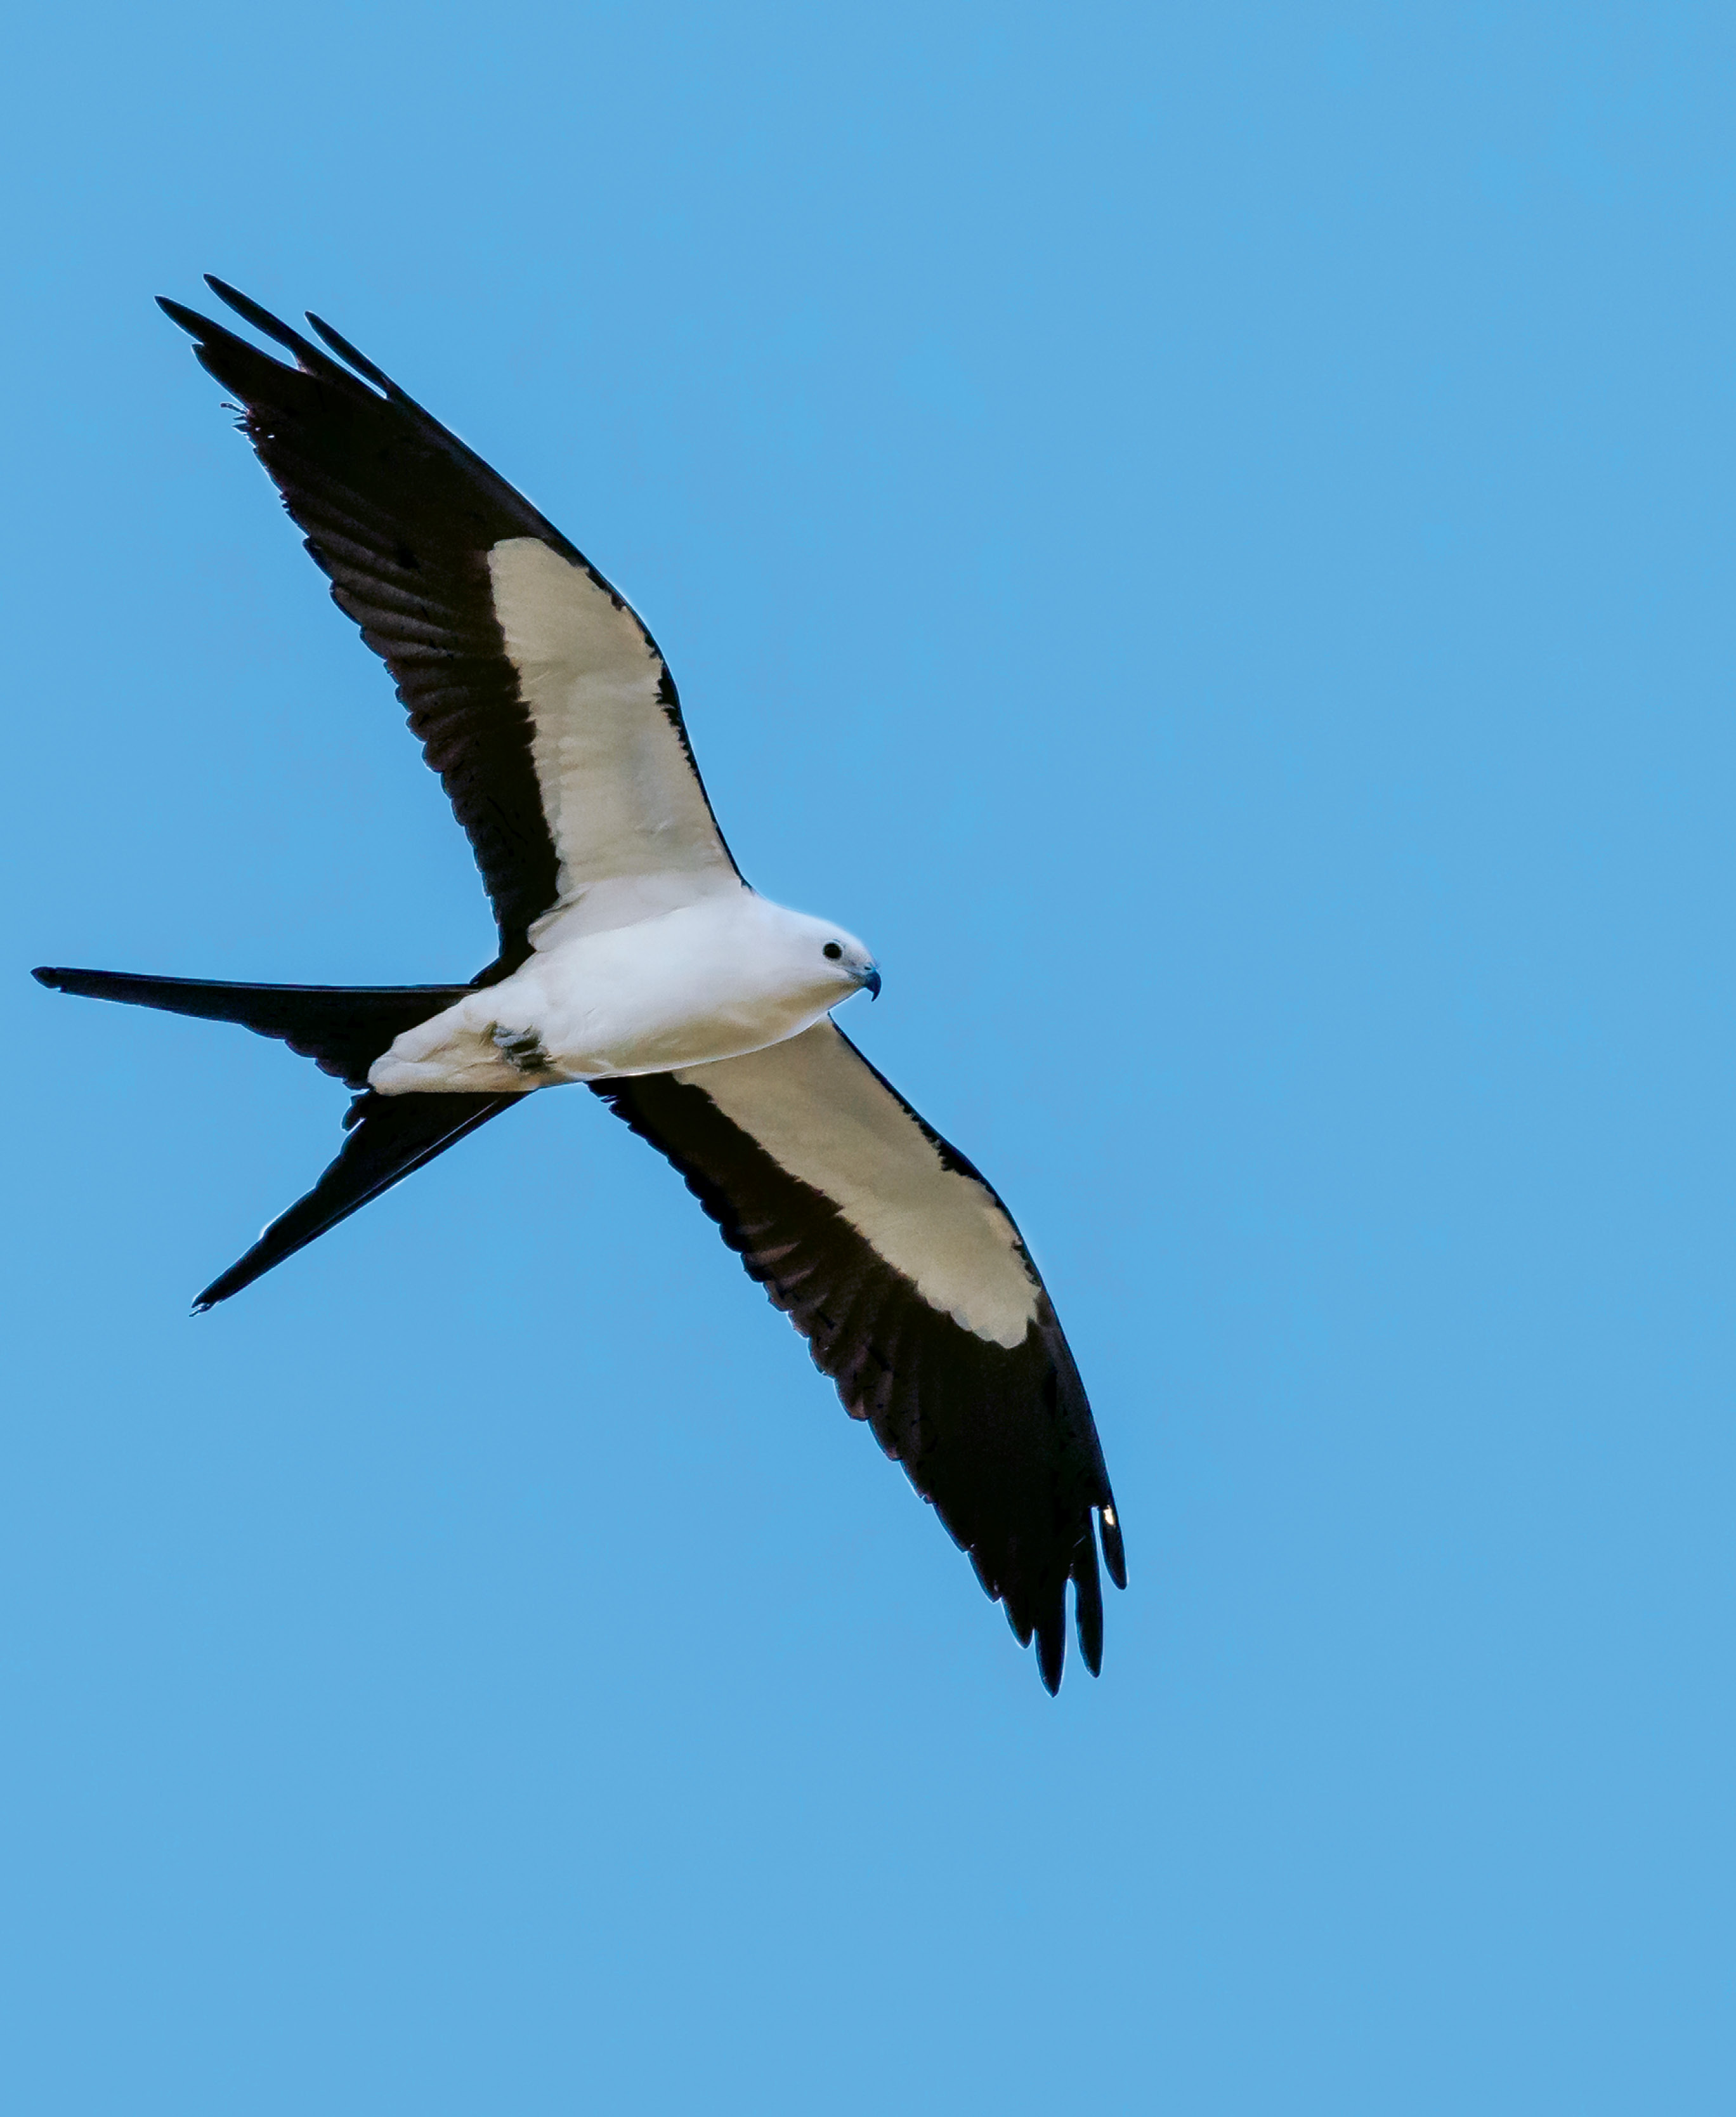 """Swallow-Tailed Kite (Elanoides forficatus) - Locally, swallow-tailed kites are primarily spotted in large floodplain forests and swamps of the outer coastal plain, especially in the Francis Marion National Forest and on the Santee, Edisto, and Savannah rivers; With a former breeding ground that included 21 states as far north as Minnesota, the swallow-tailed kite is now limited to seven or eight Southern states. Help South Carolina and the Center for Birds of Prey monitor their distribution and population trends by reporting sightings at <a href=""""http://www.thecenterforbirdsofprey.org/"""">http://www.thecenterforbirdsofprey.org/</a>."""